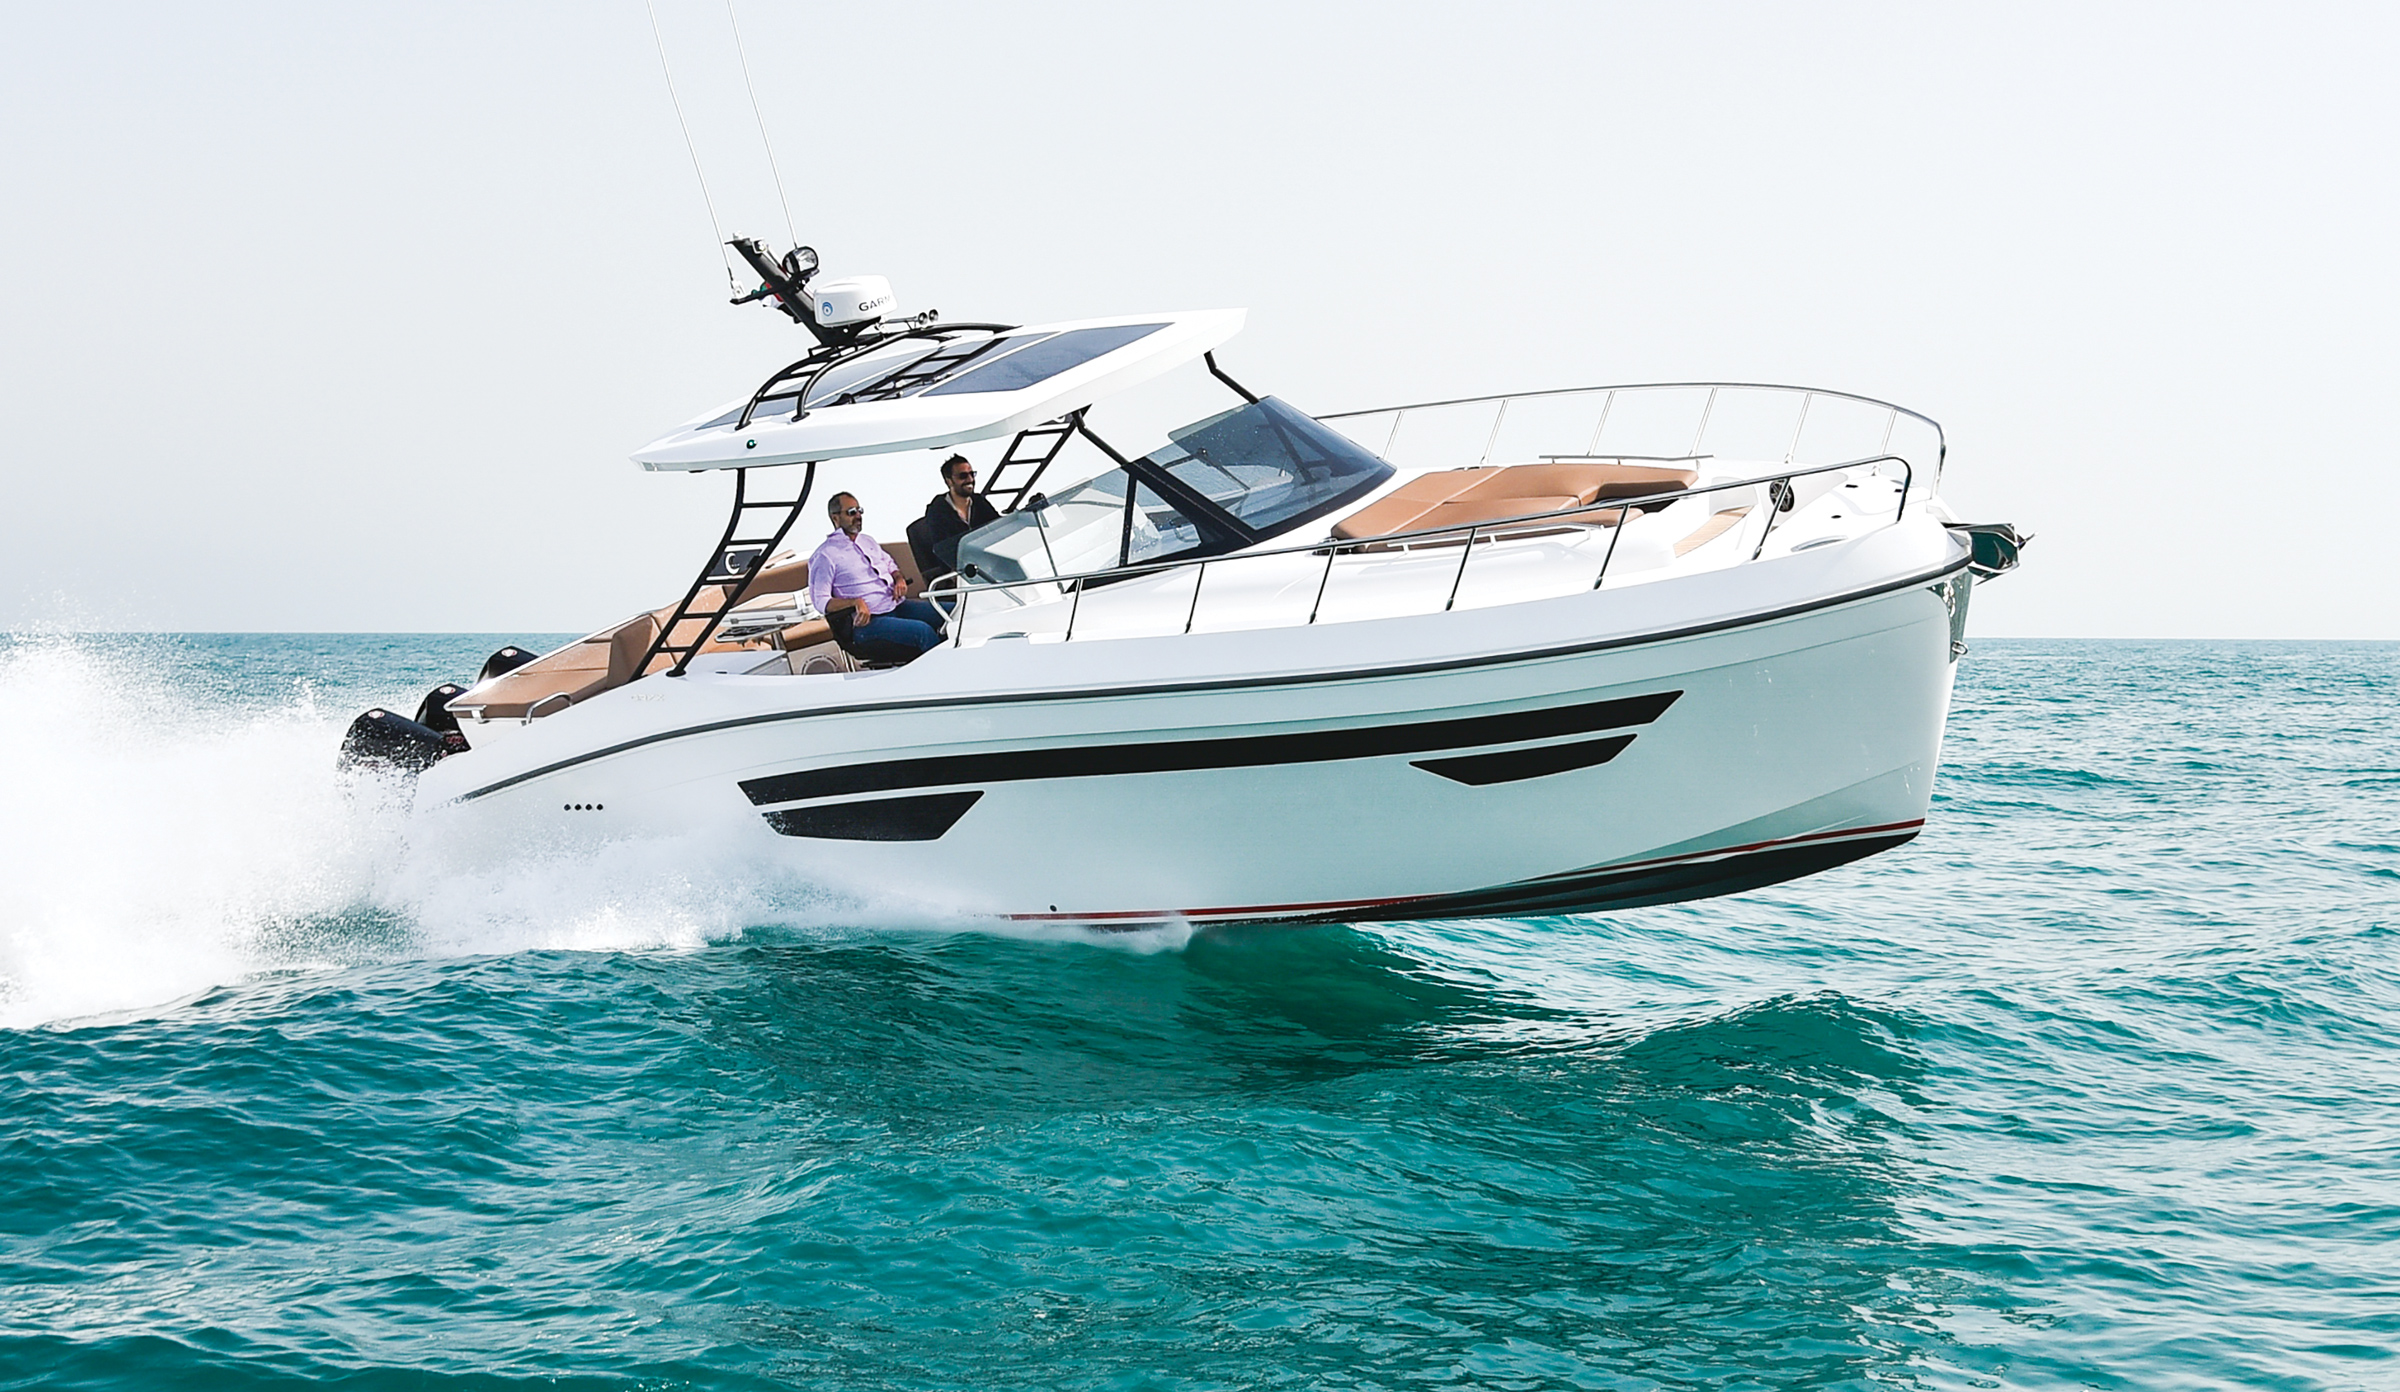 Gulf Craft Oryx 379 Review Outboard Party Boat Is The Steal Of The Decade